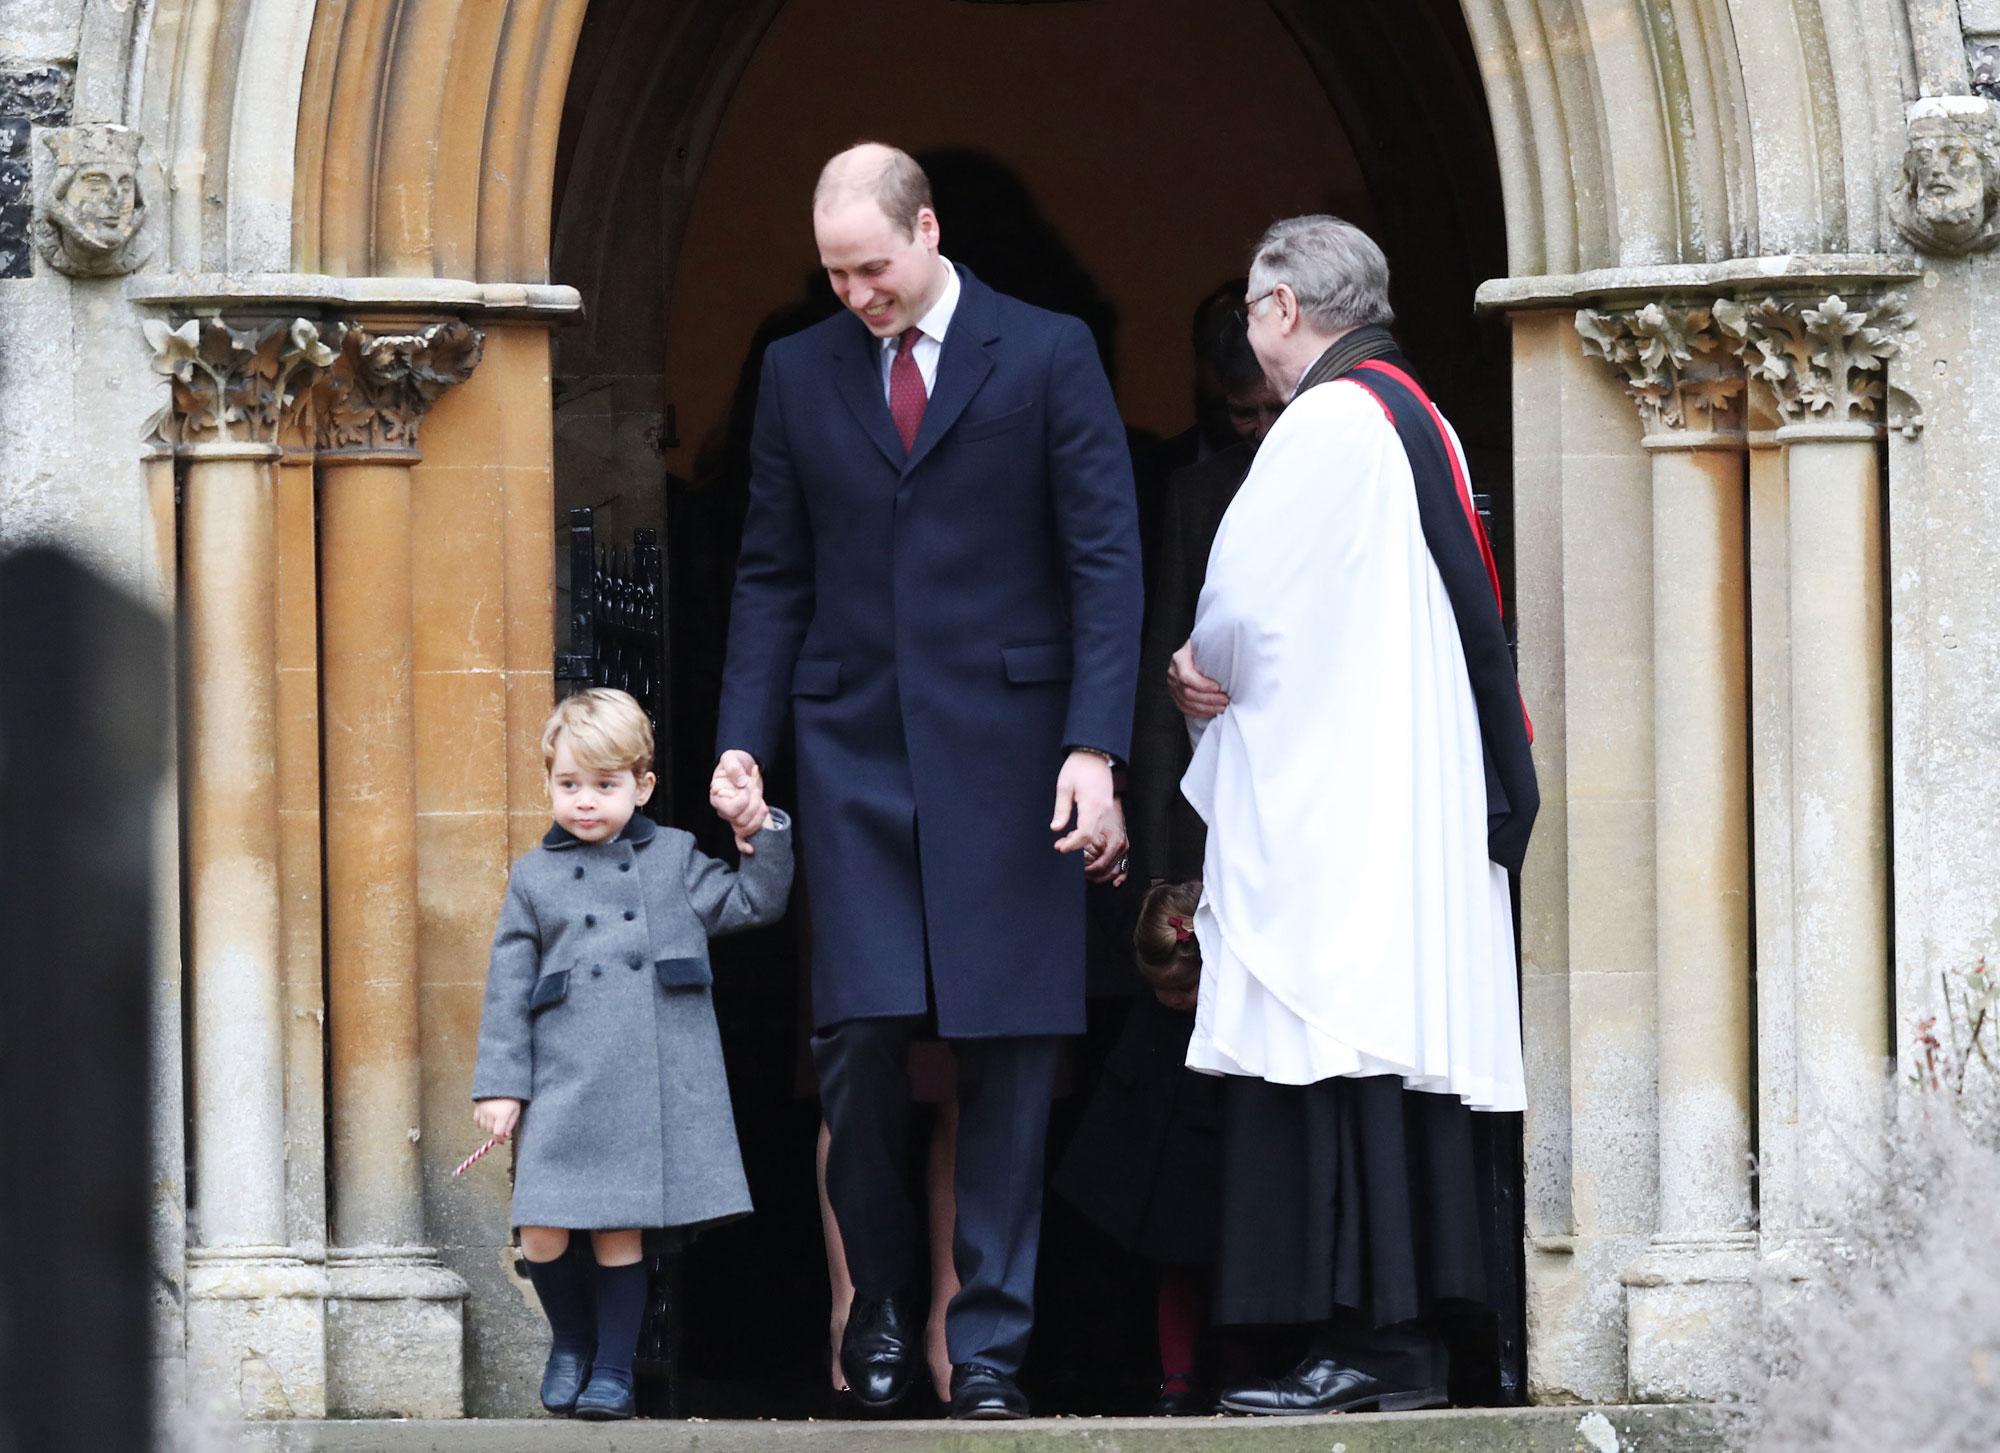 The Duke of Cambridge and Prince George leave following the morning Christmas Day service at St Mark's Church in Englefield, Berkshire. (Photo by Andrew Matthews/PA Images via Getty Images)